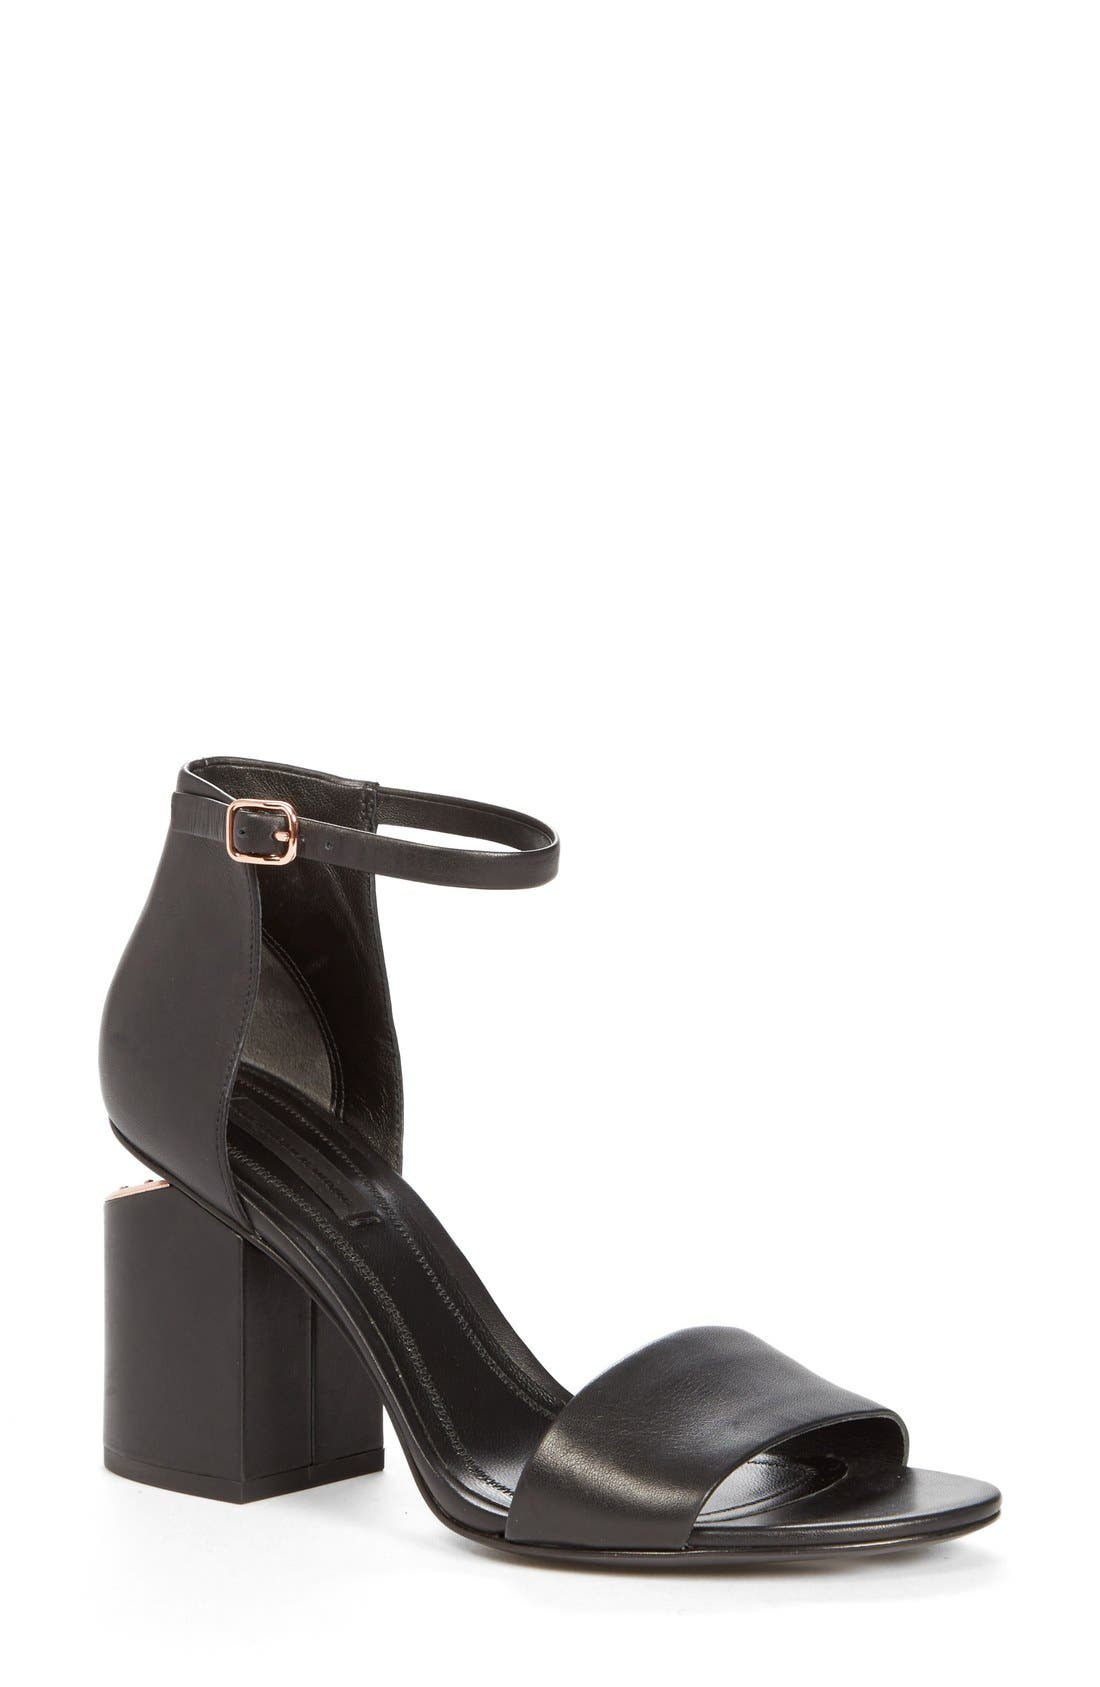 Wang WomenNordstrom Ankle Strap Alexander for Sandals YvbyImf76g